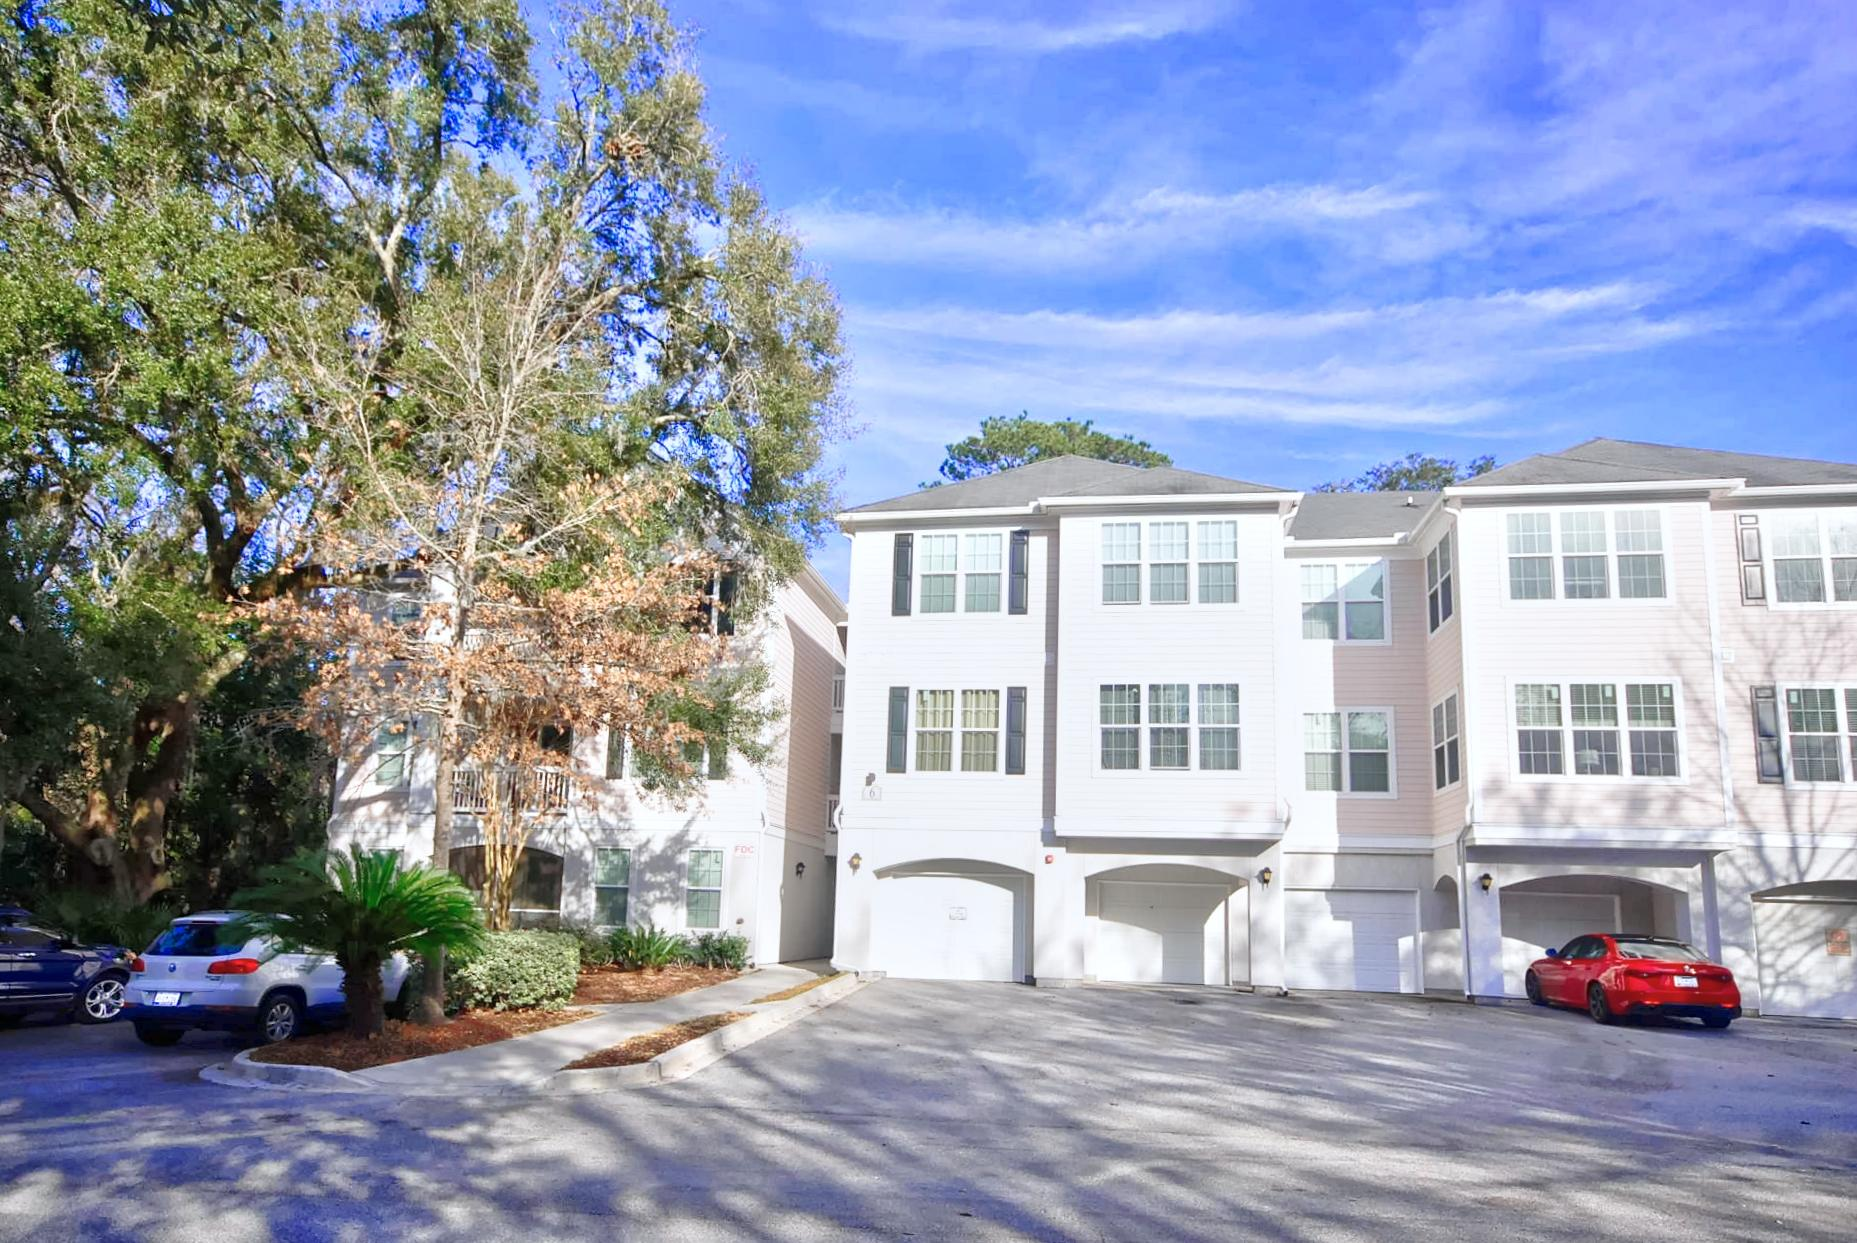 60 Fenwick Hall Alley UNIT 625 Johns Island, SC 29455